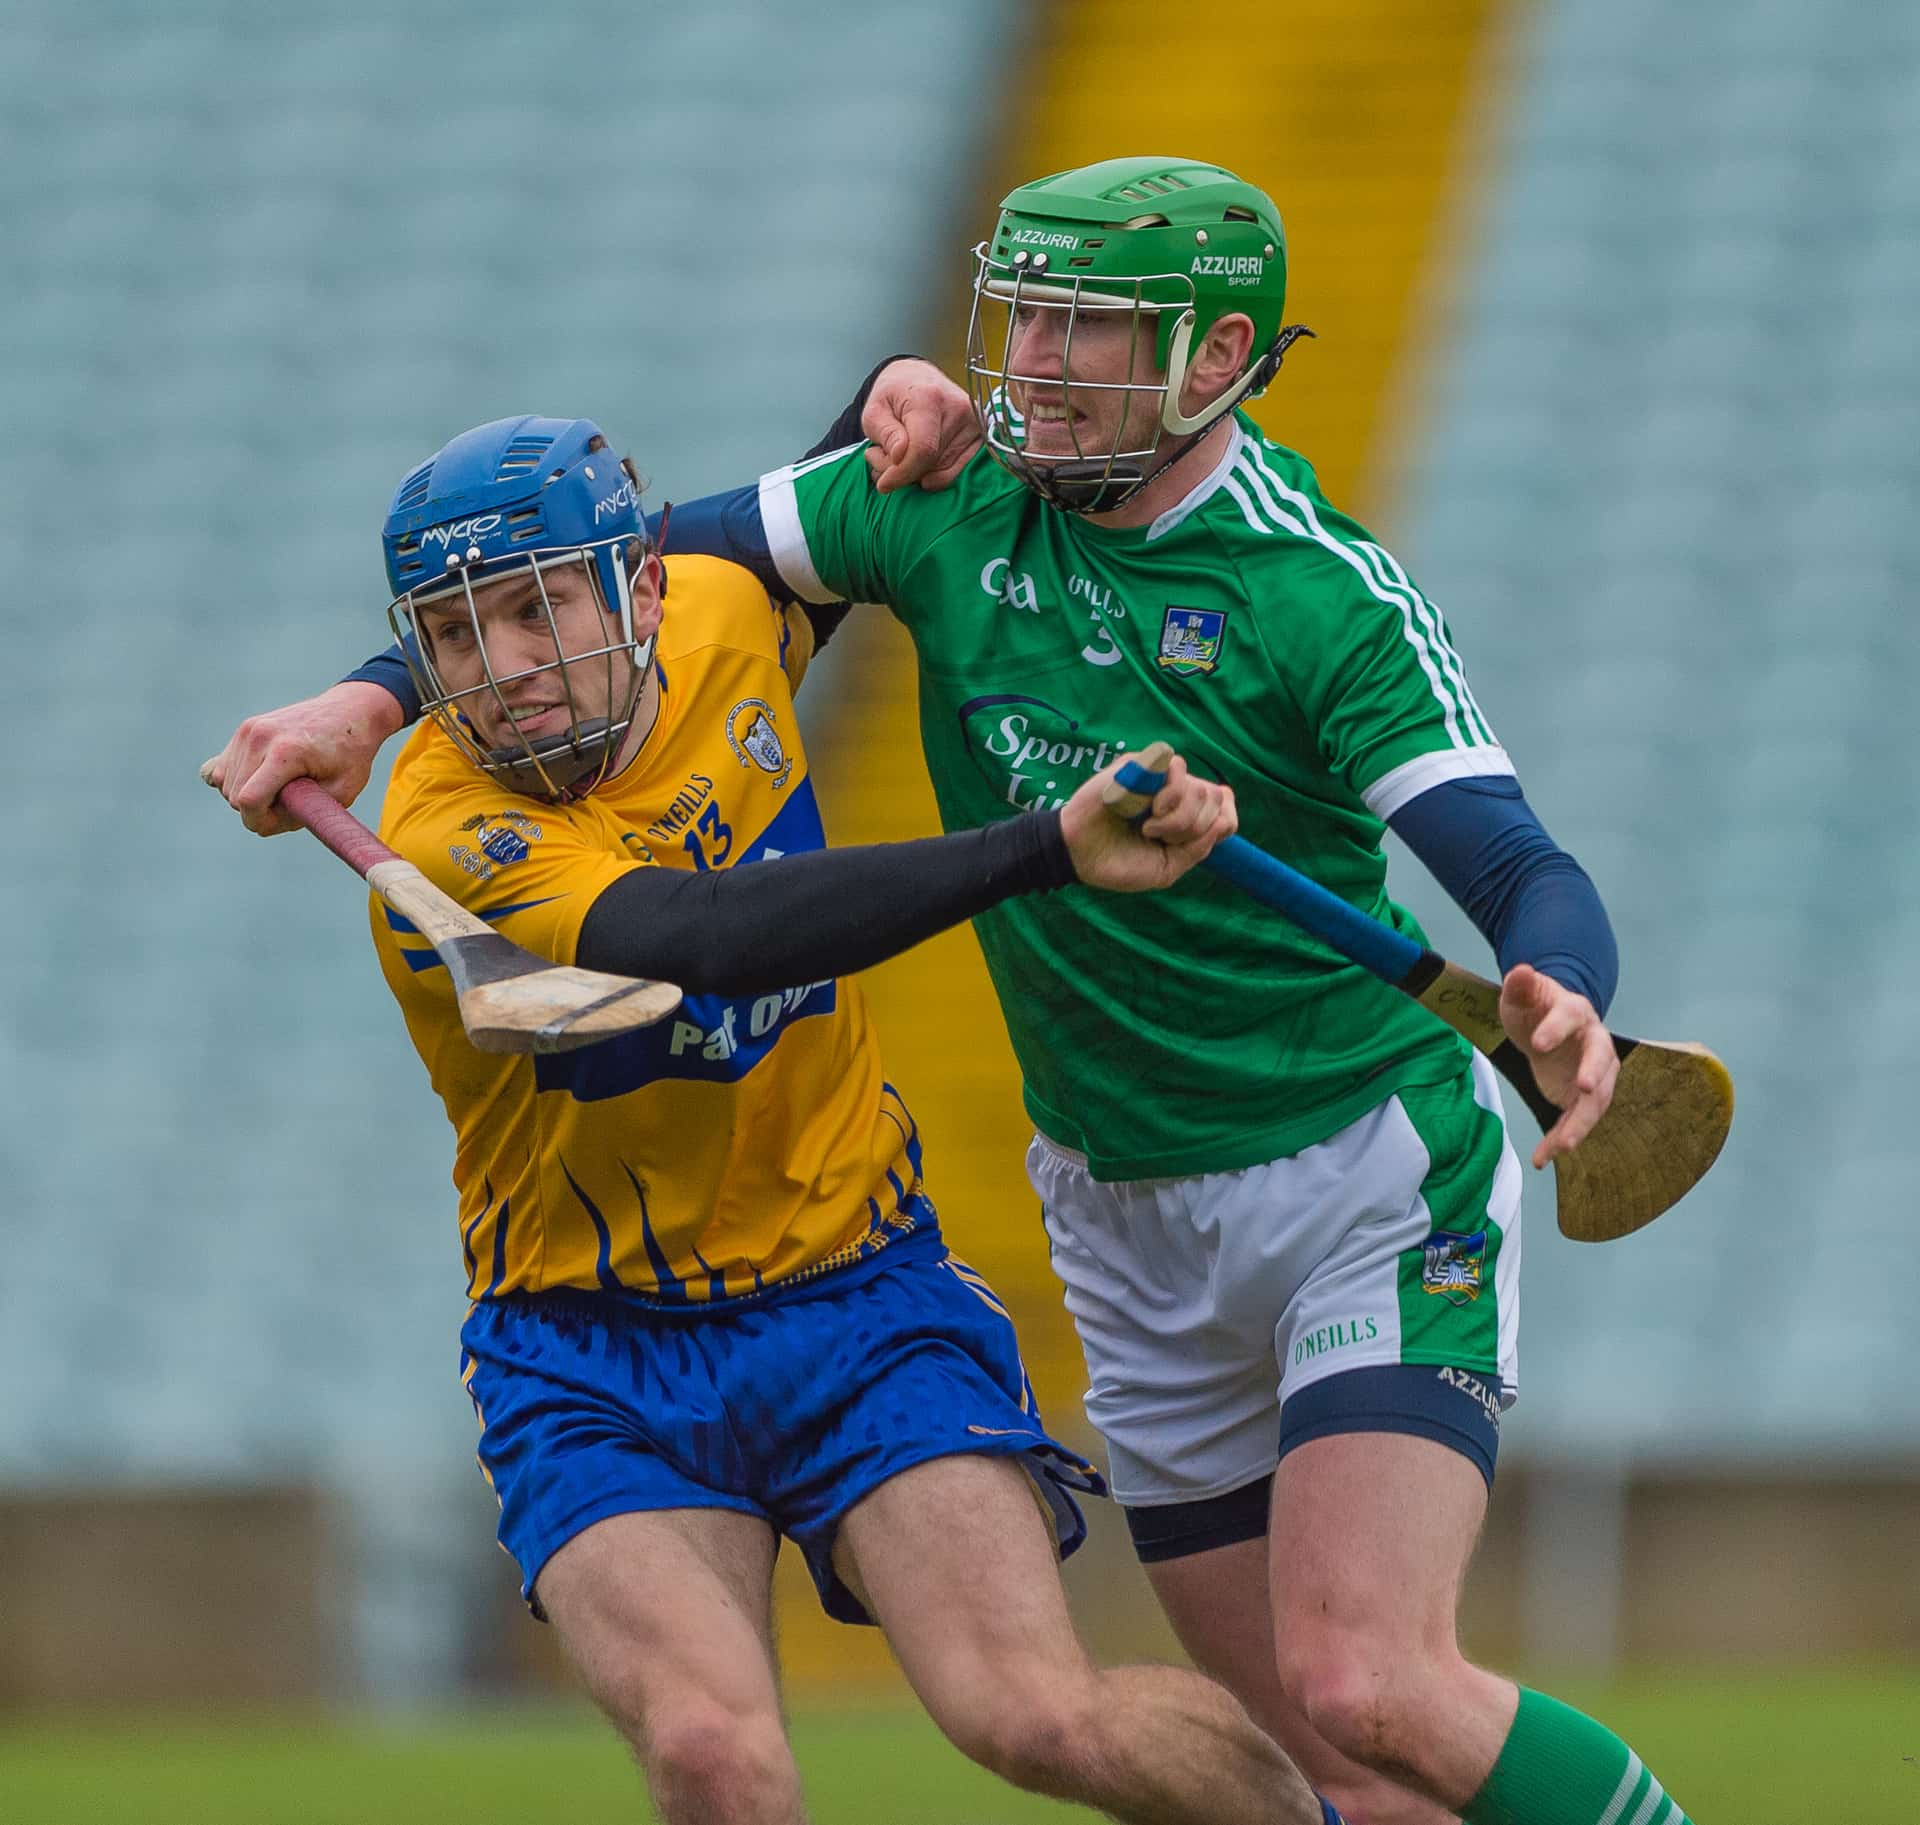 Shane O'Donnell and Seamus hickey tussle for the ball. Photo: Martin Connolly